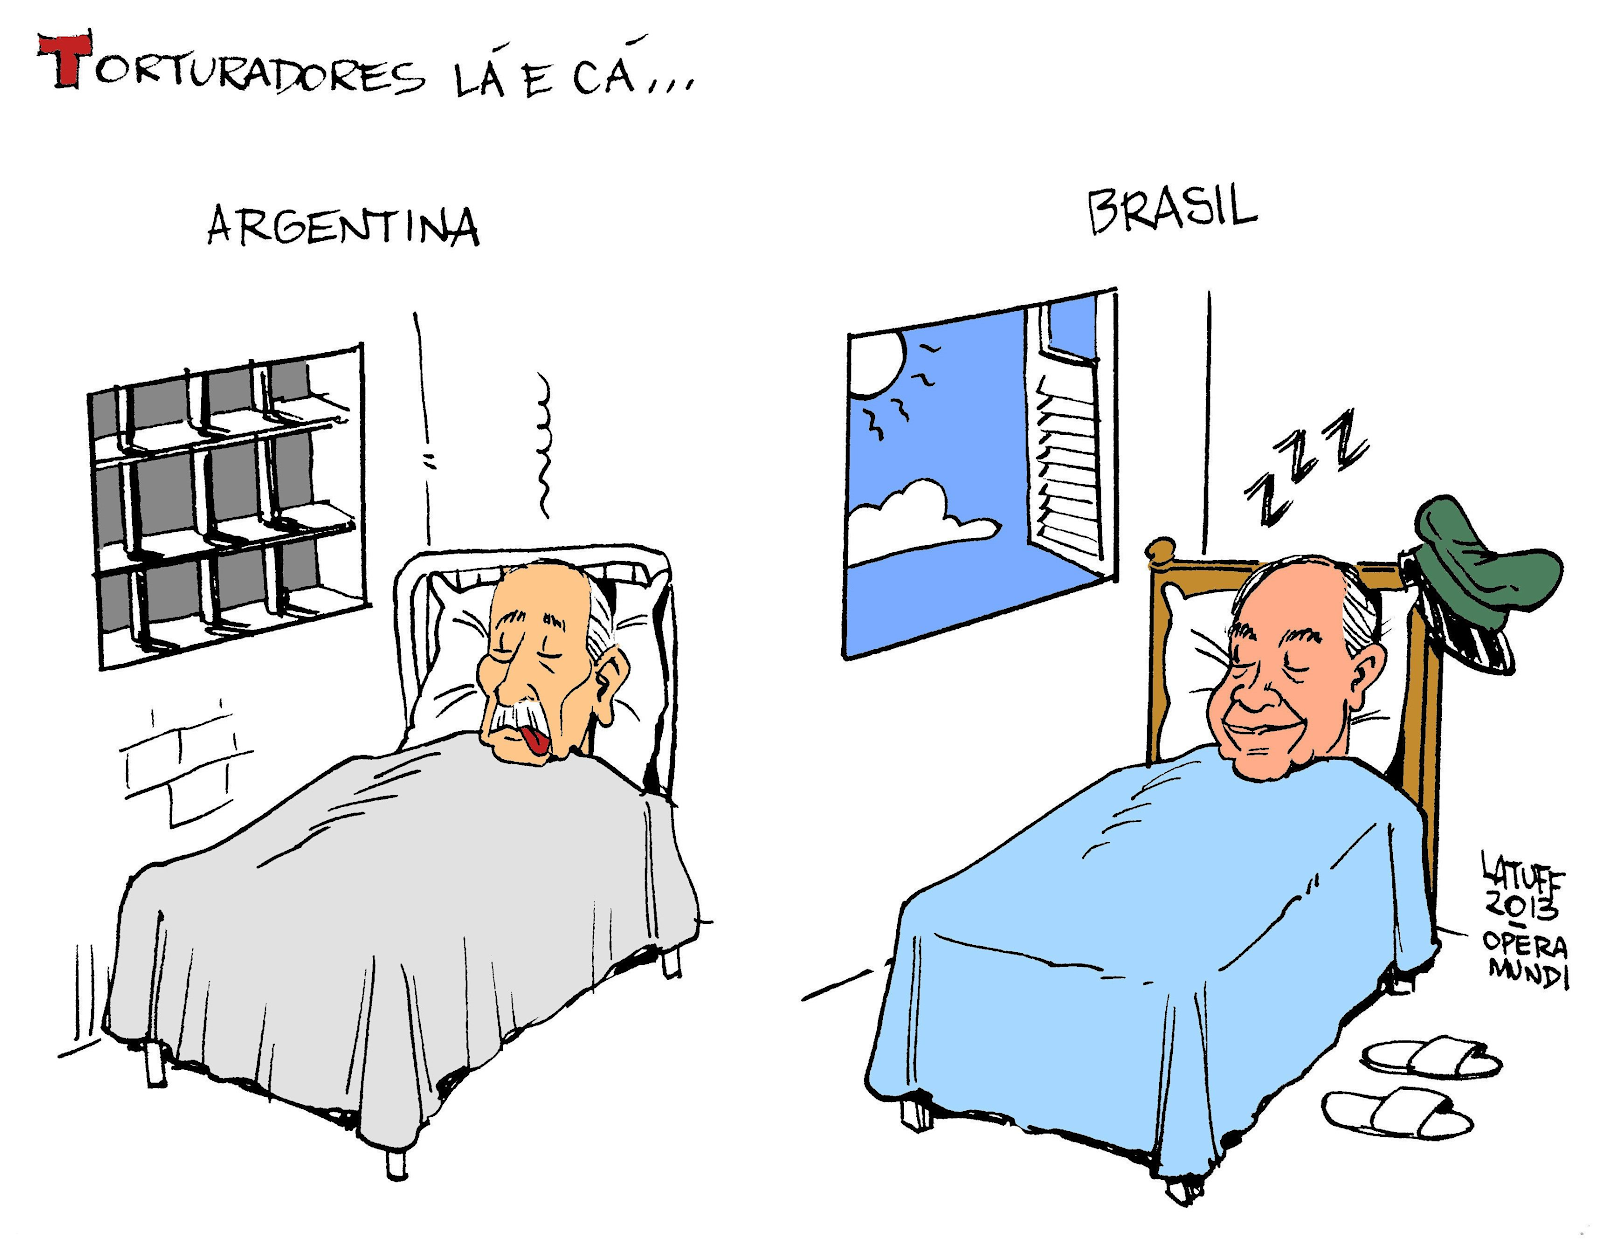 Charge de Latuff comparando as ditaduras da Argentina e do Brasil.